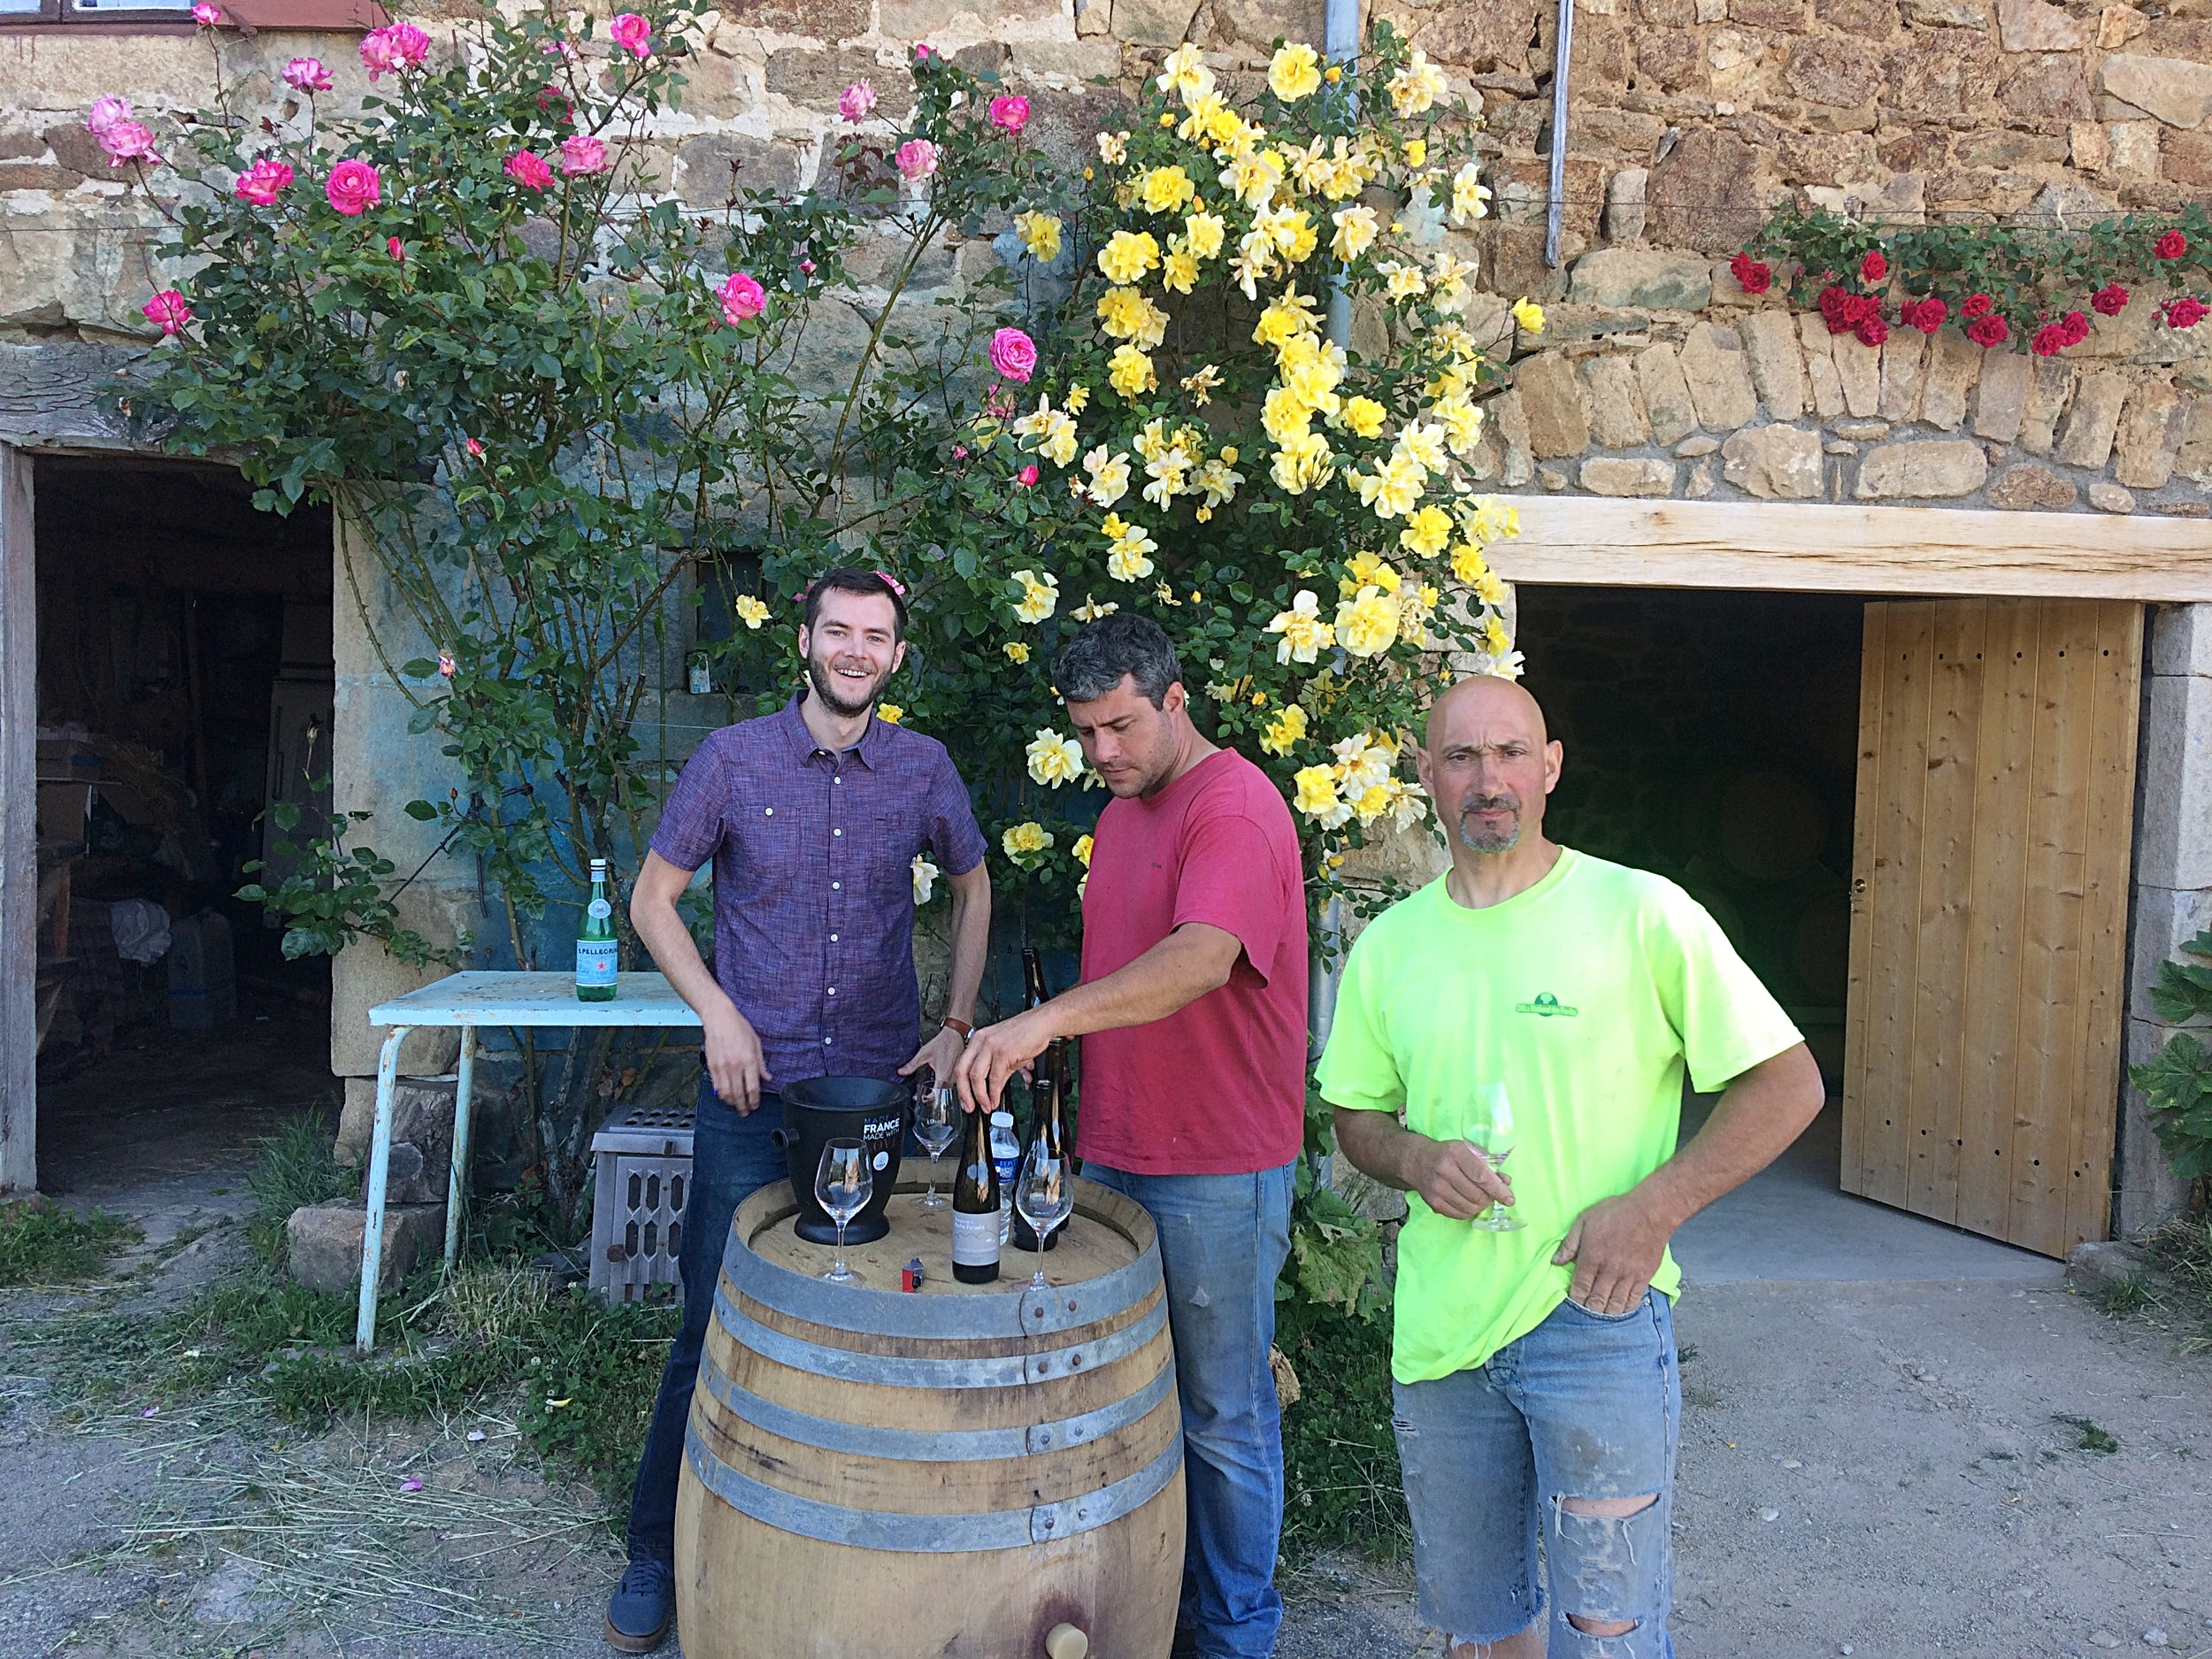 Me (left), Yann the vigneron (center) and Richard , Yann's father in law and business partner (right)